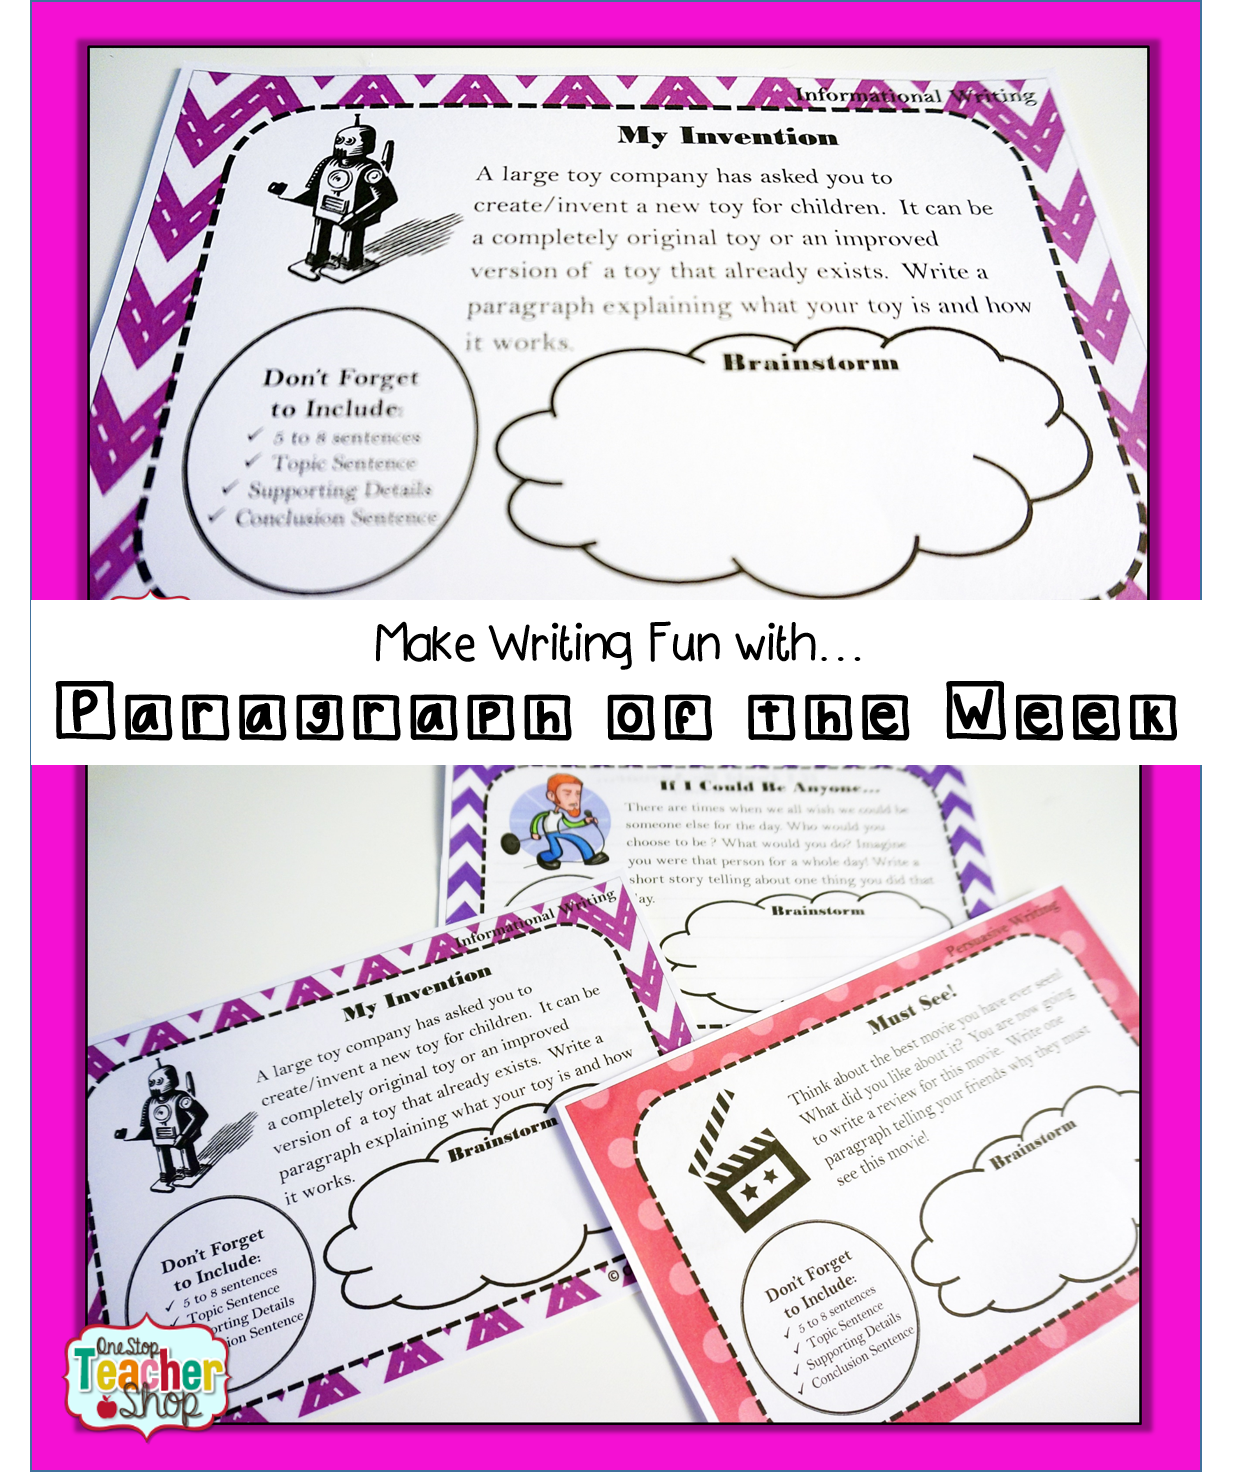 Here are some writing tips, ideas, and activities to make writing fun. Grab the free writing prompts while you are there.